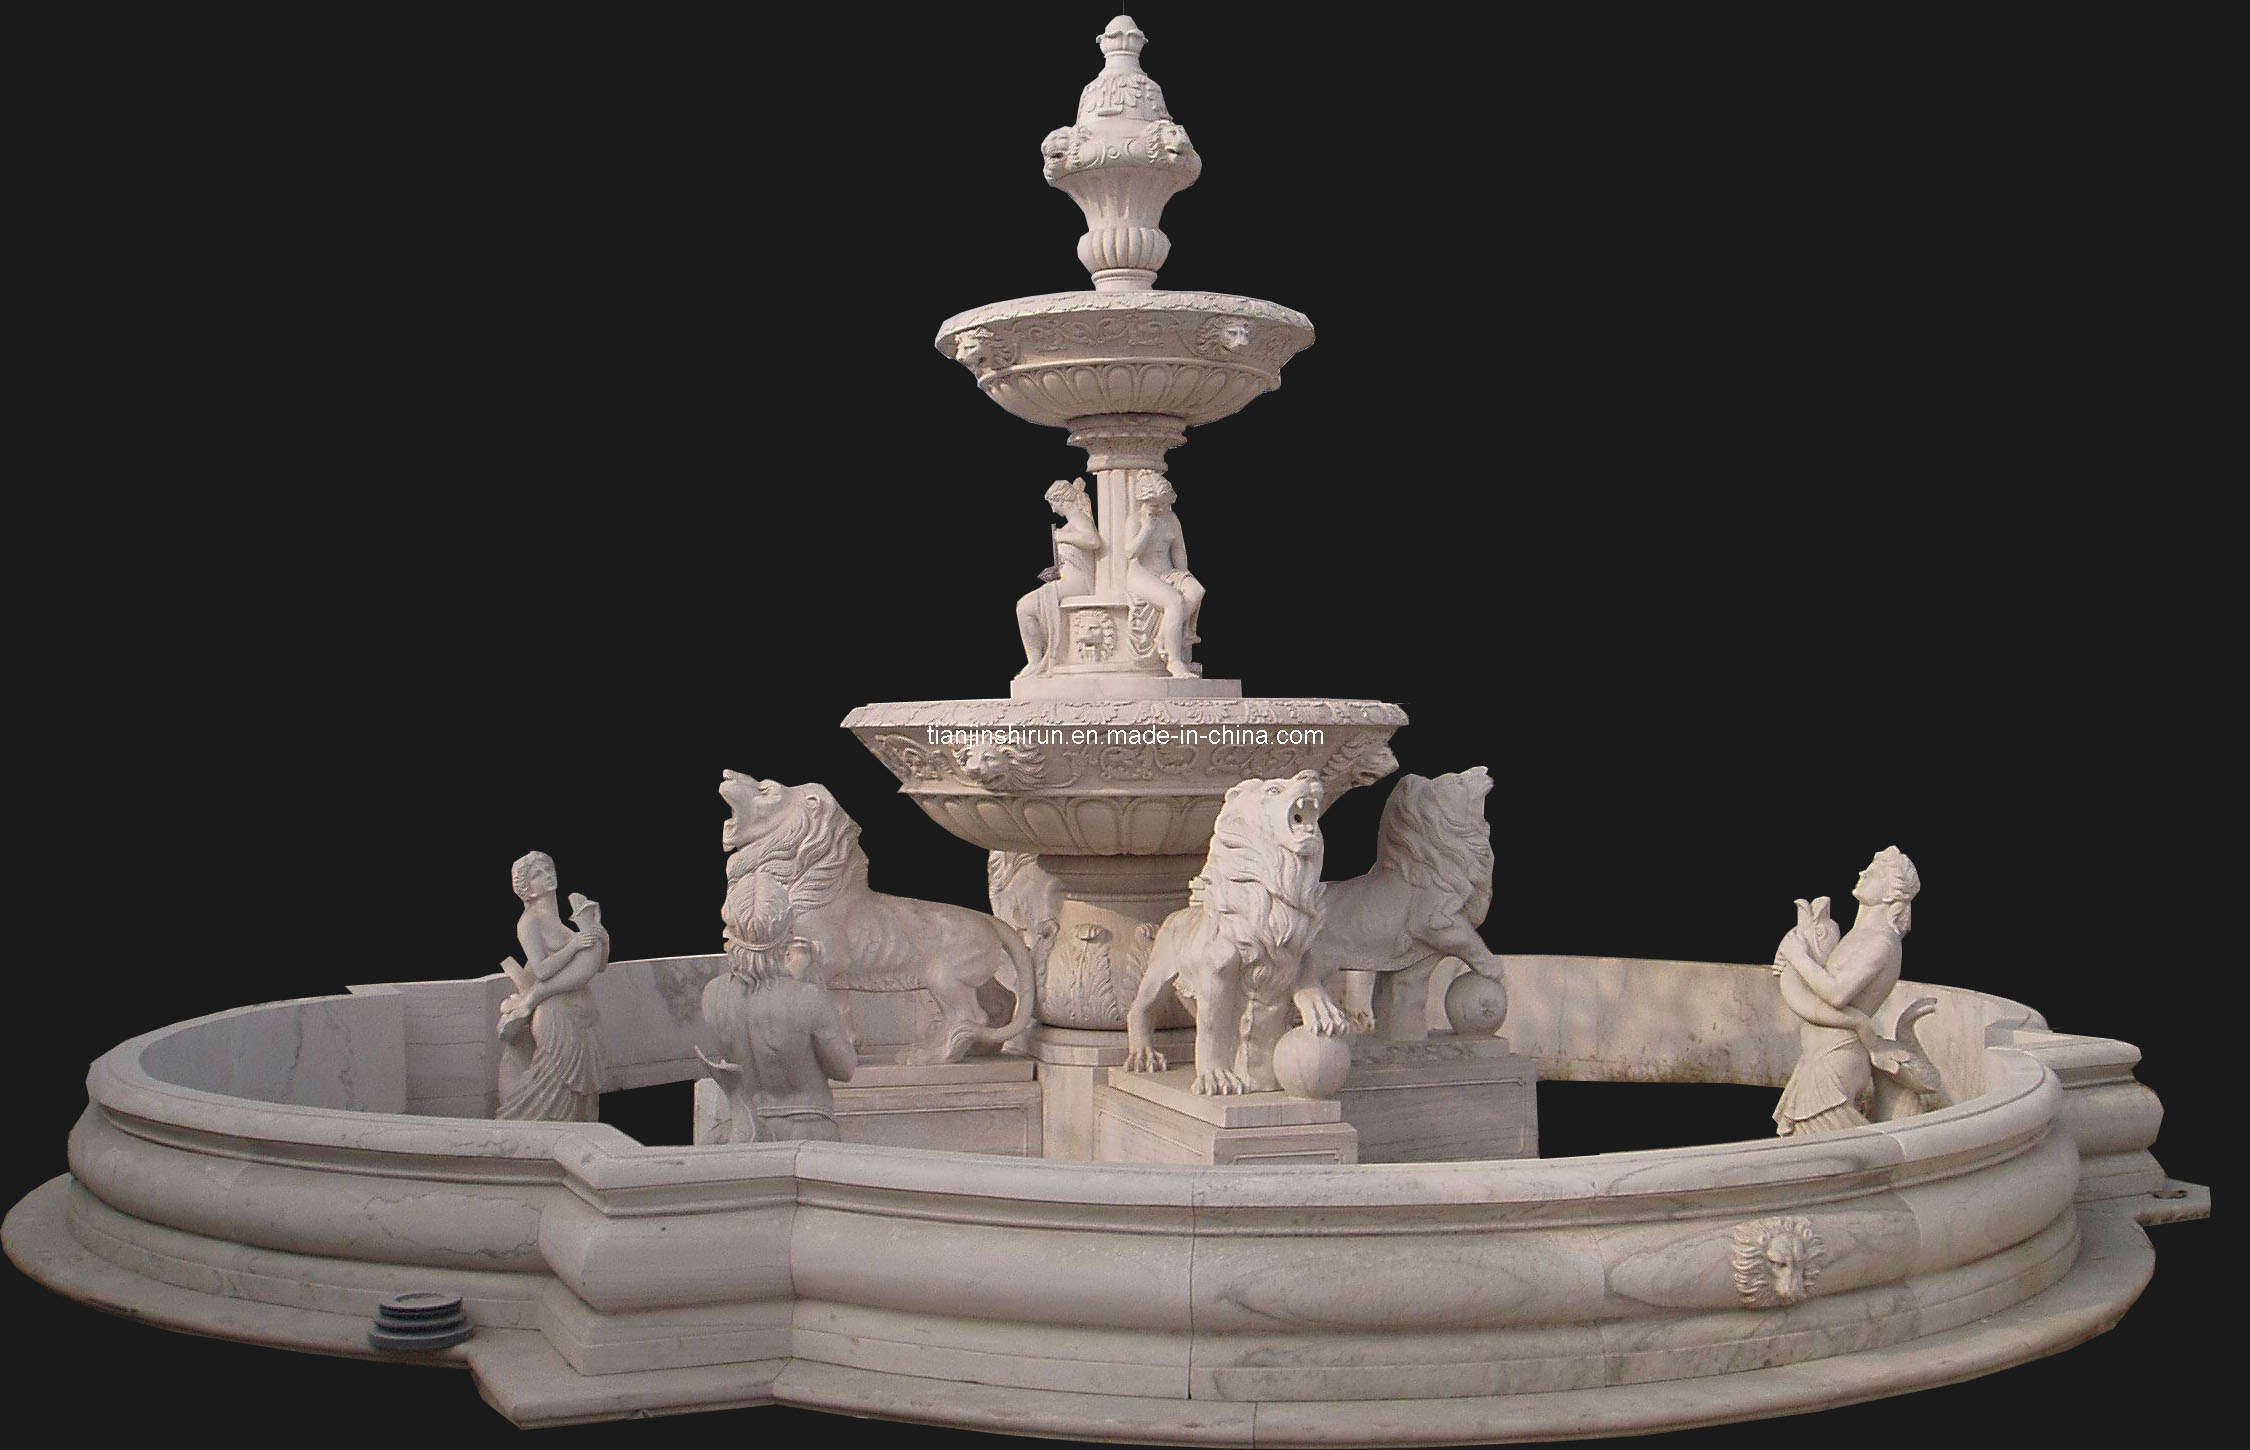 Triple Tier Water Feature & Pool Surround - Large Stone